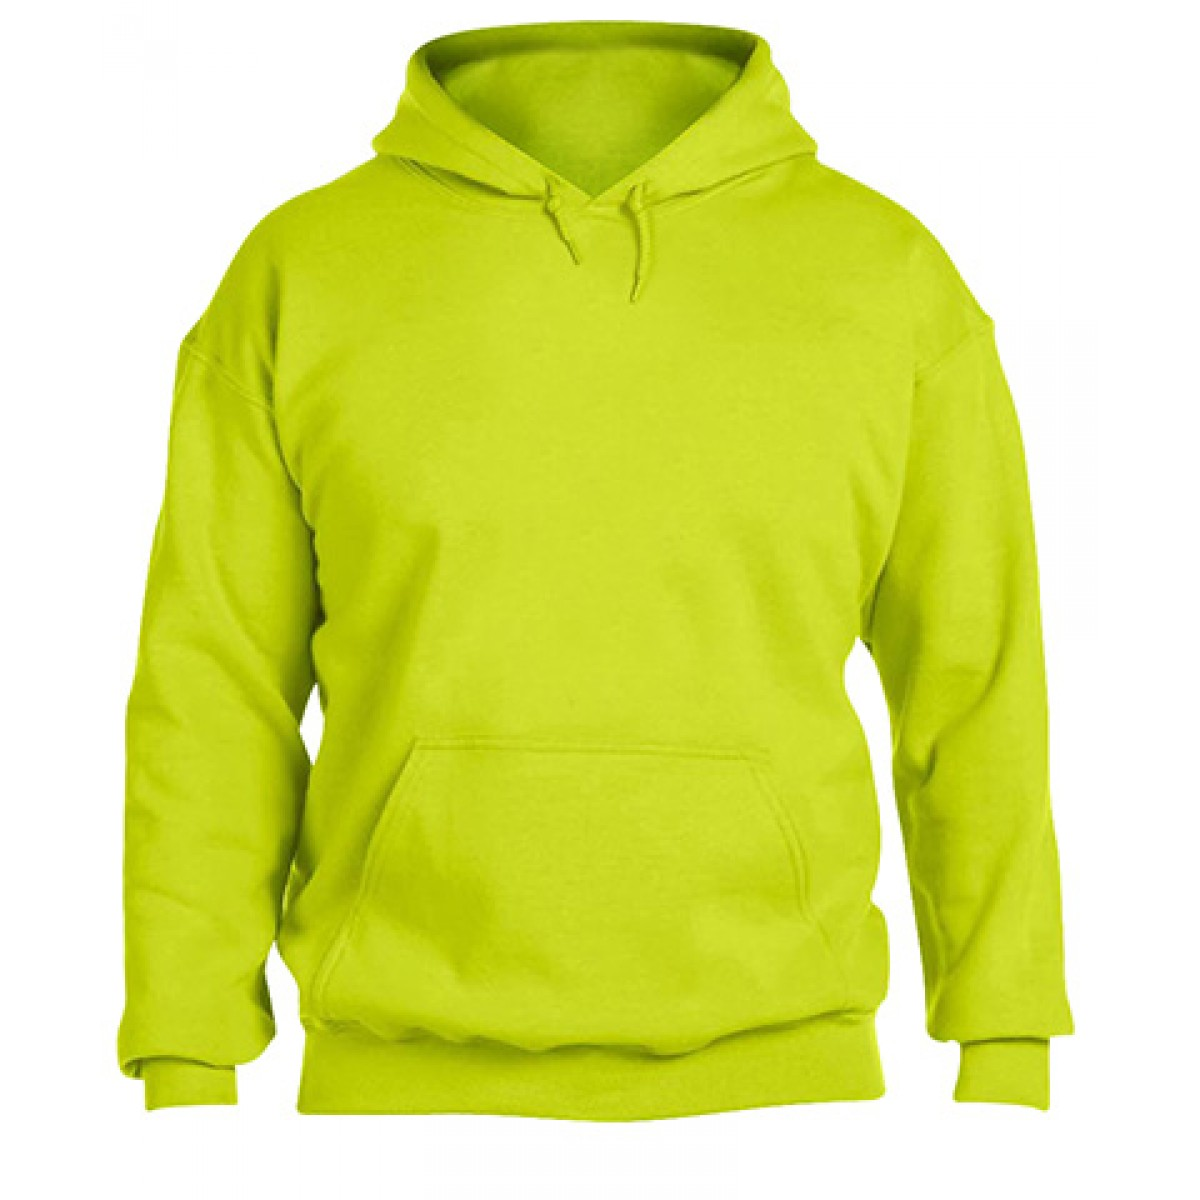 Hooded Sweatshirt 50/50 Heavy Blend-Safety Green-XL